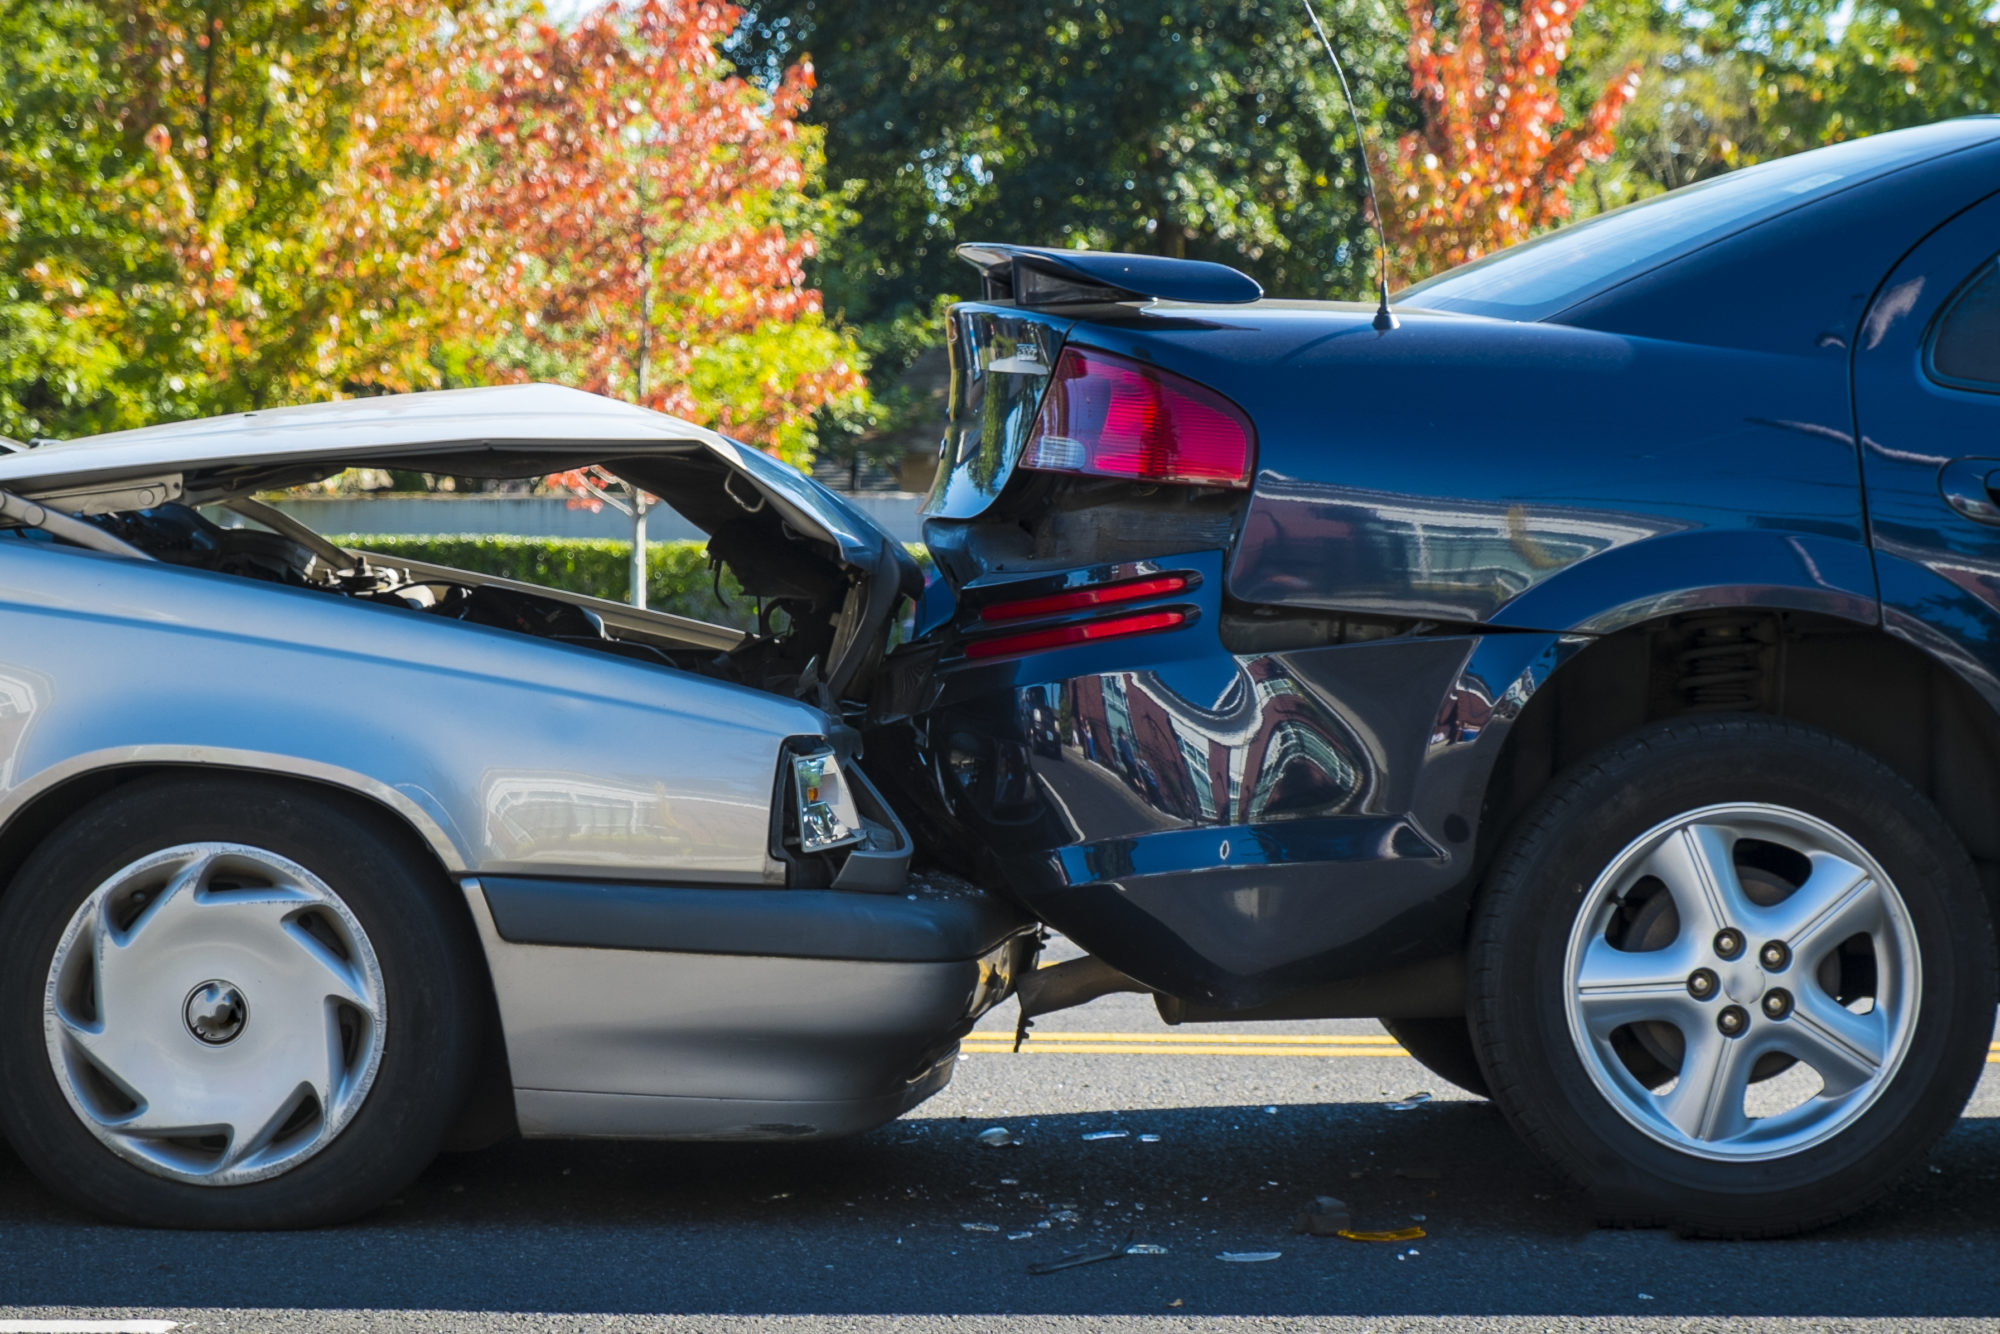 Steps to Take After a Car Accident in Nashville